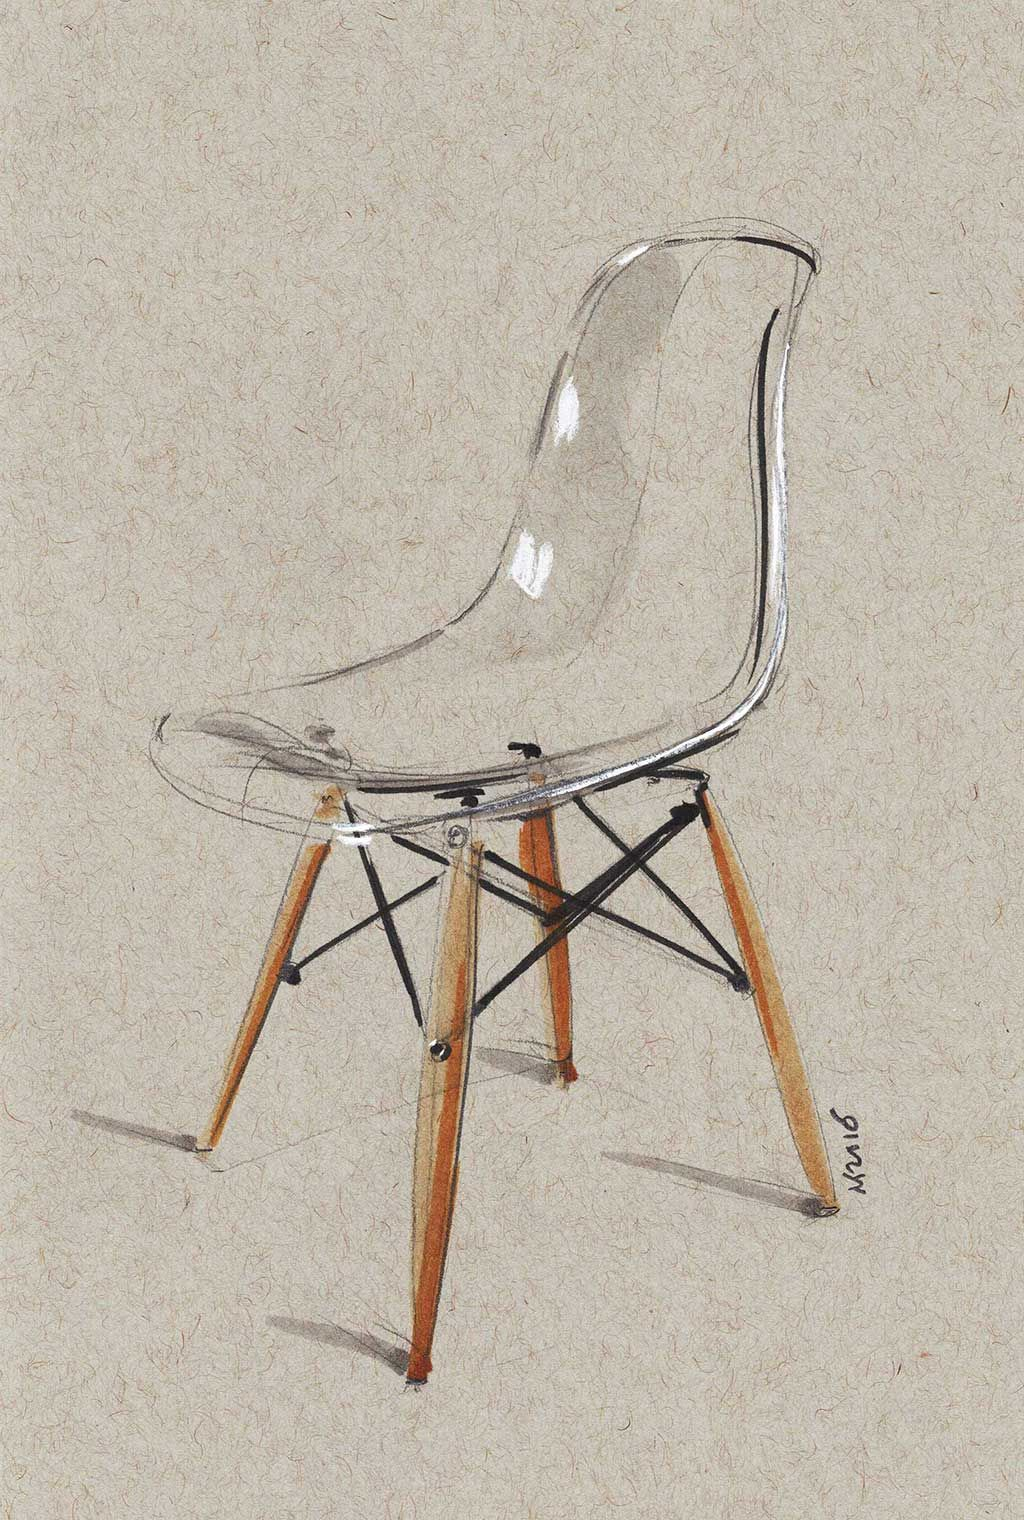 Chair sketch Quick 10min sketch of transparent Eames Less lines